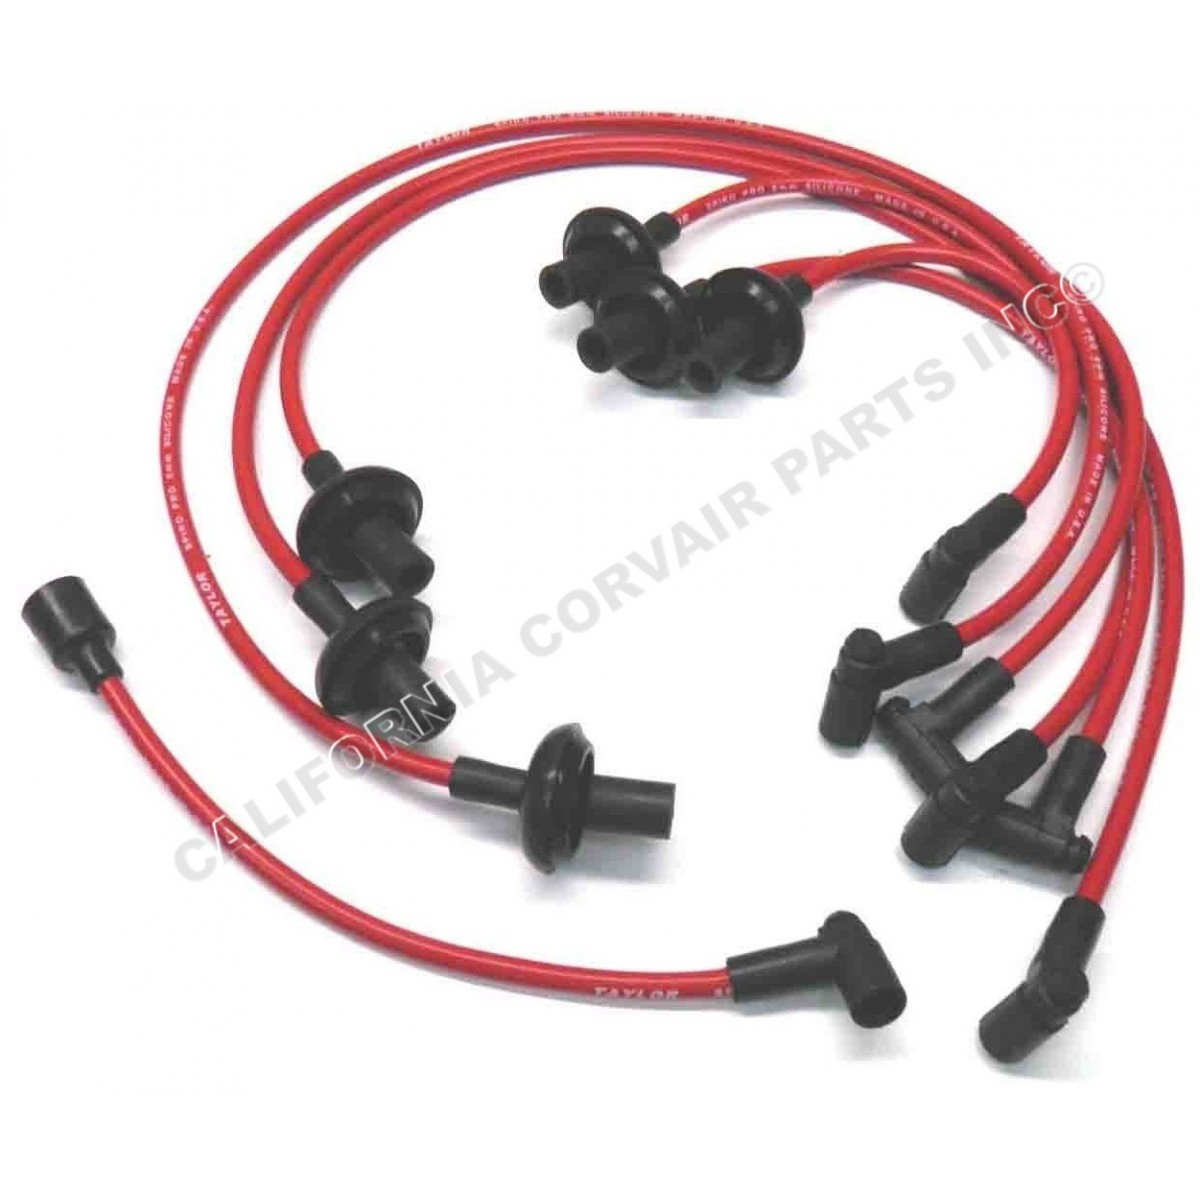 NEW 8MM HEI SPARK PLUG WIRES - RED - California Corvair ... Hei Plug Wires on